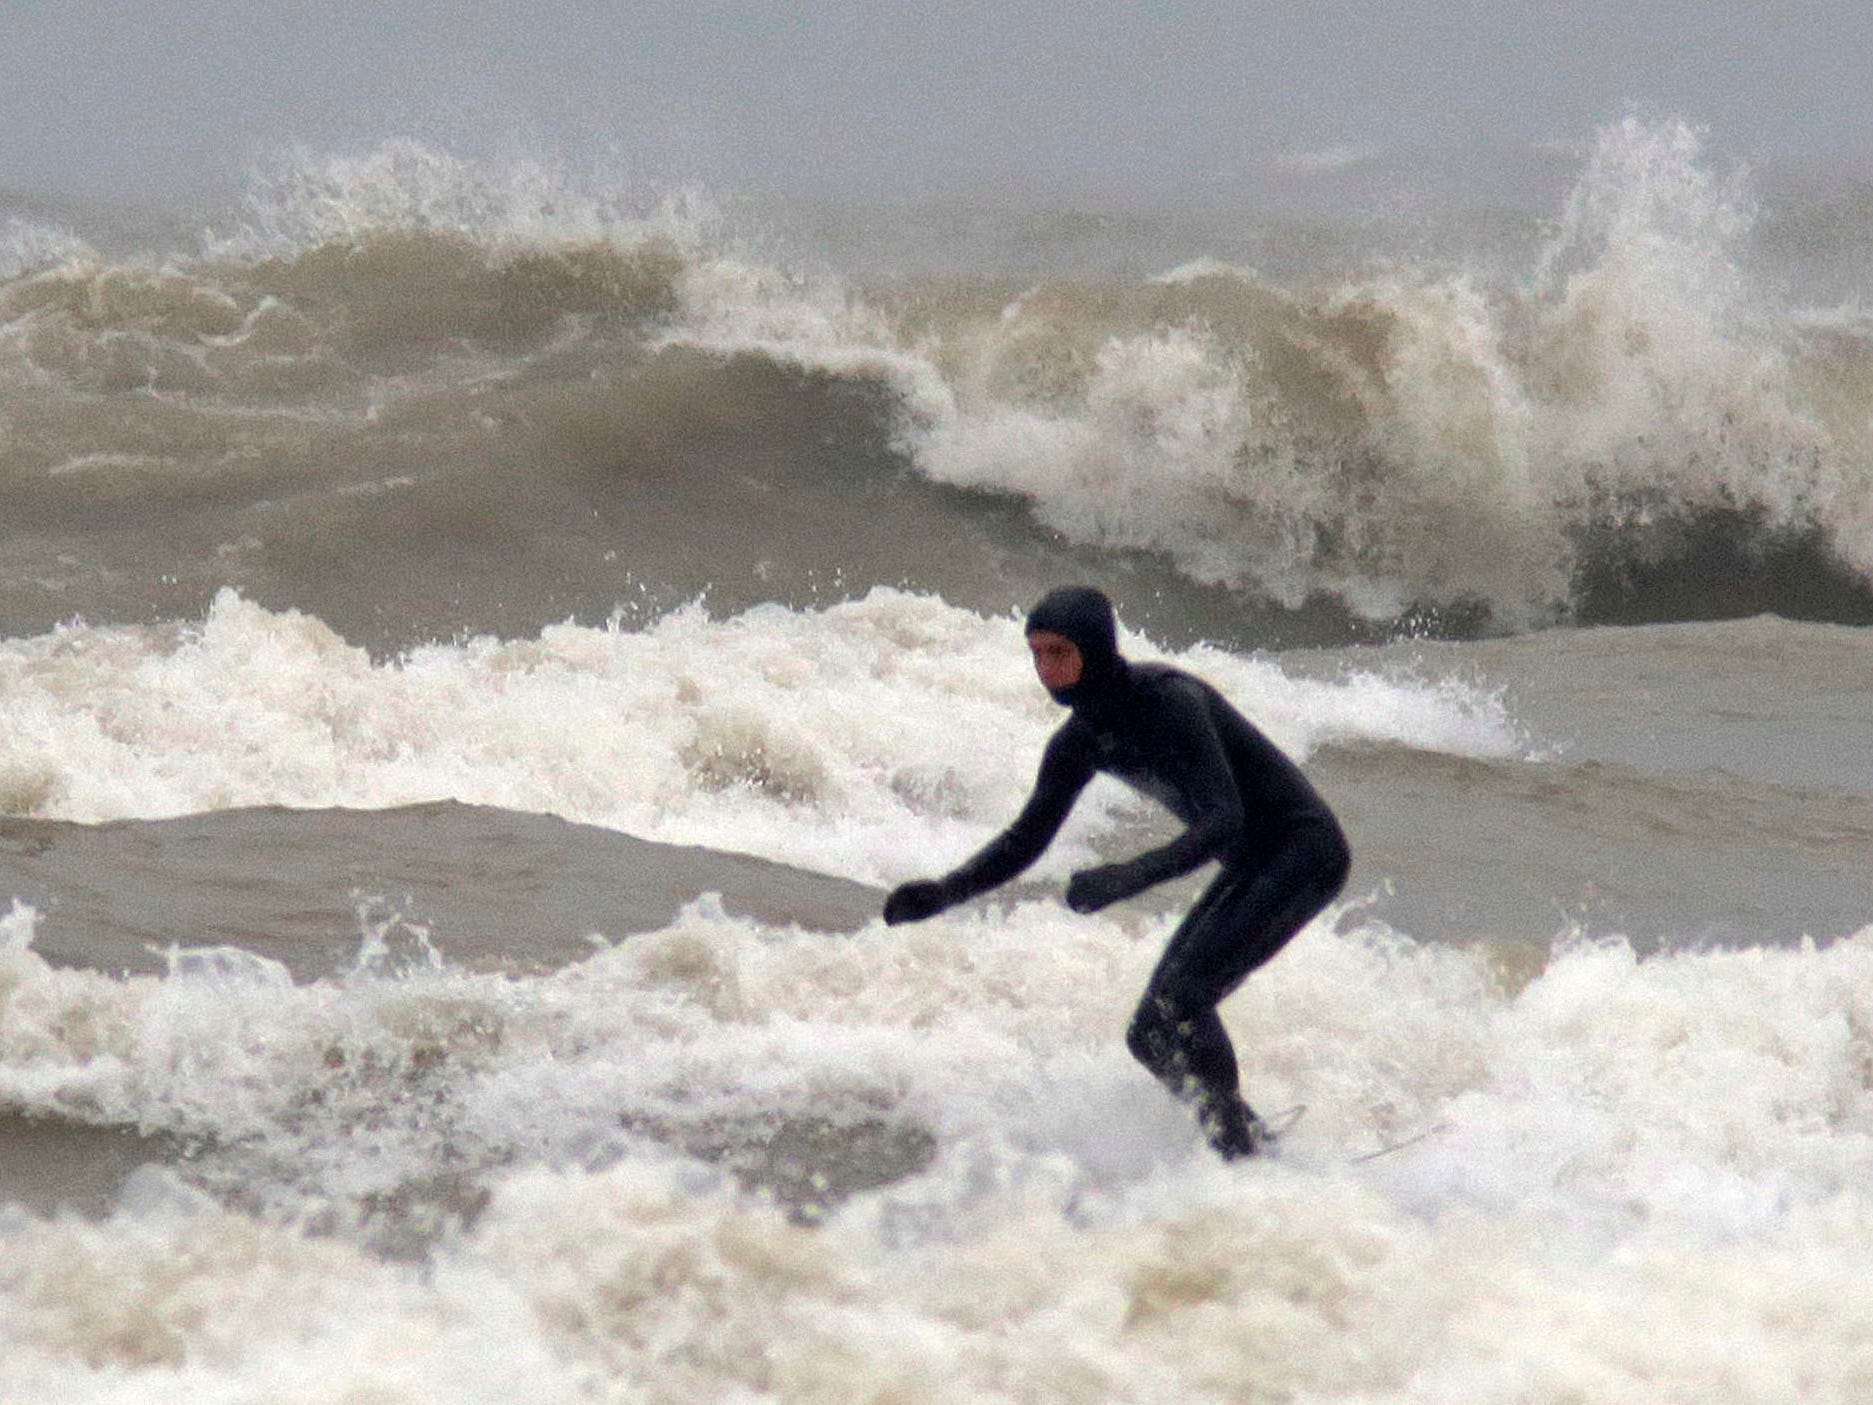 A surfer takes on the waves at Deland Park, Monday, January 7, 2019, in Sheboygan, Wis. Westerly winds of 15-25 knots were expected to be in the 3 to 8 foot range with possibilities as high as 10 feet.